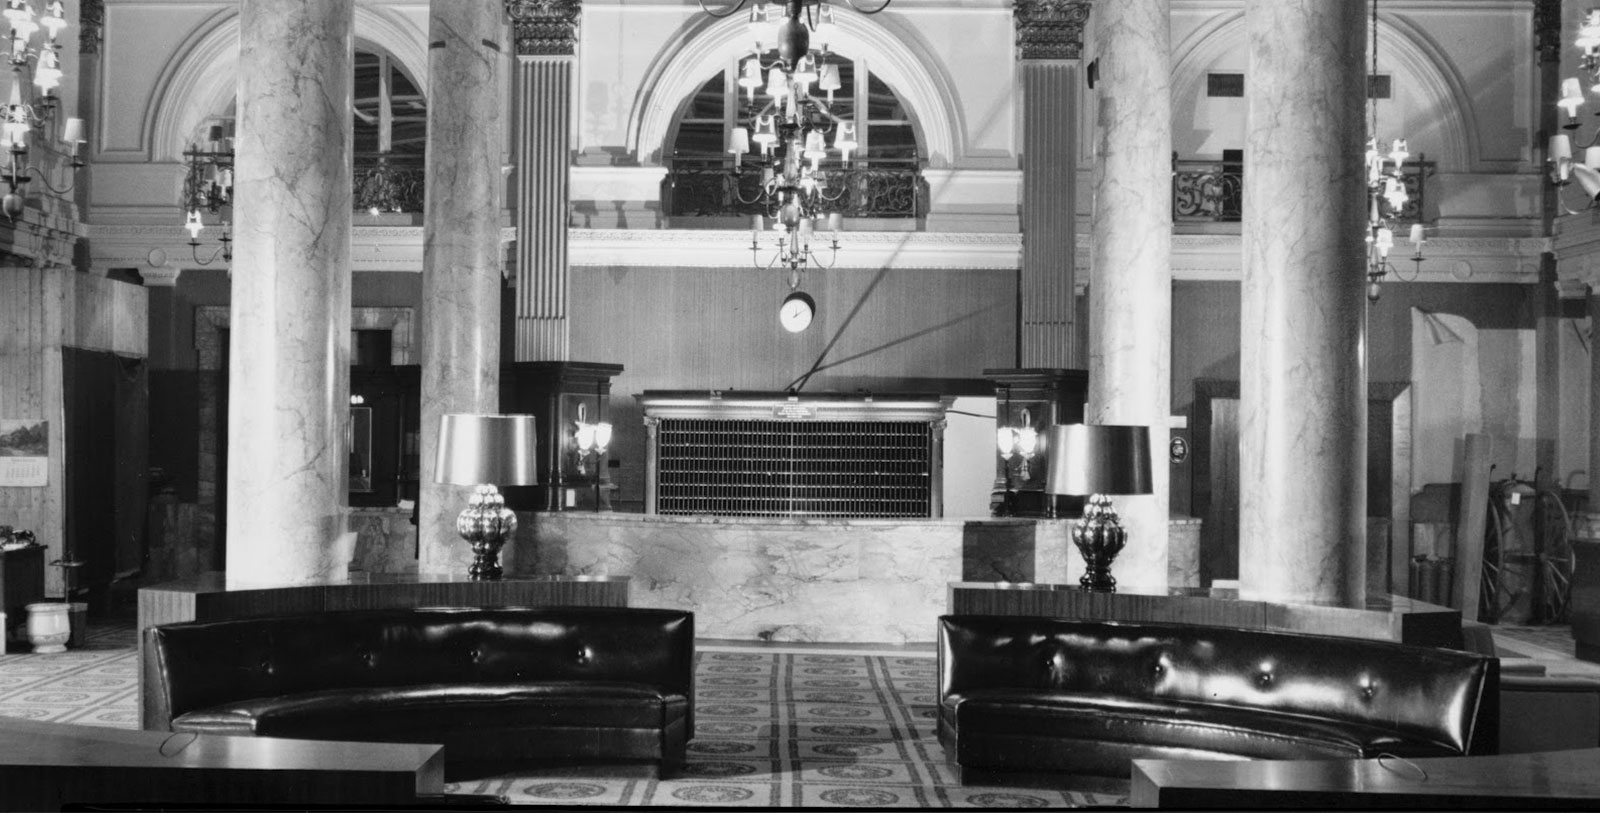 Lobby of The Willard Intercontinental Hotel in the 1960s, The Willard Intercontinental Hotel, 1847, Member of Historic Hotels of America, Washington, District of Columbia, History Mystery